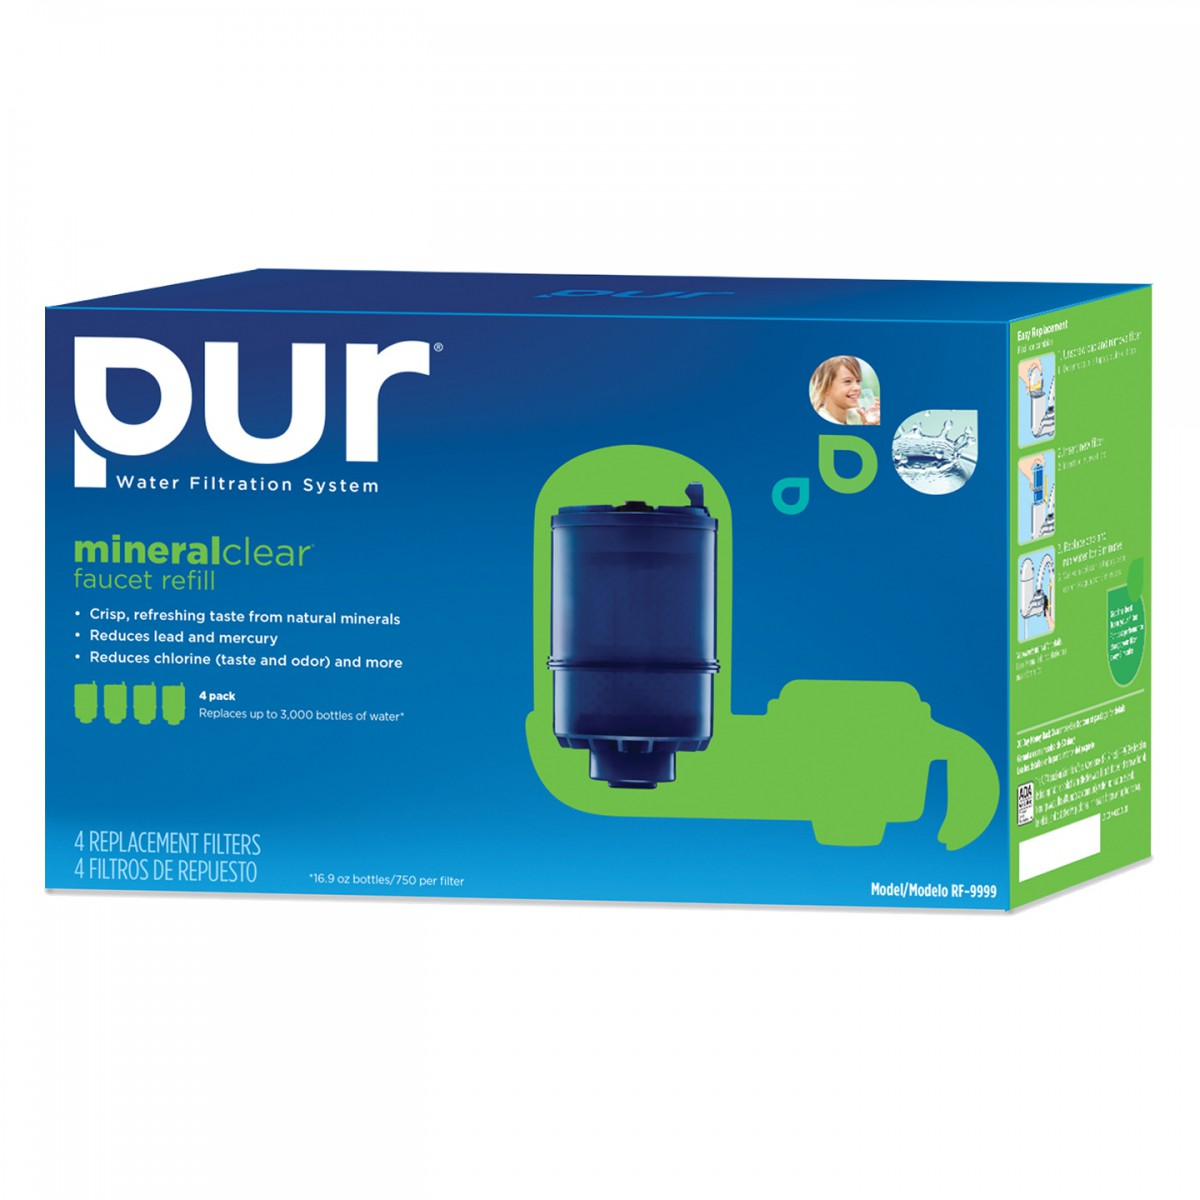 Pur Mineralclear Faucet Refill 6 Pack.PUR RF 9999 Faucet Mount Water ...